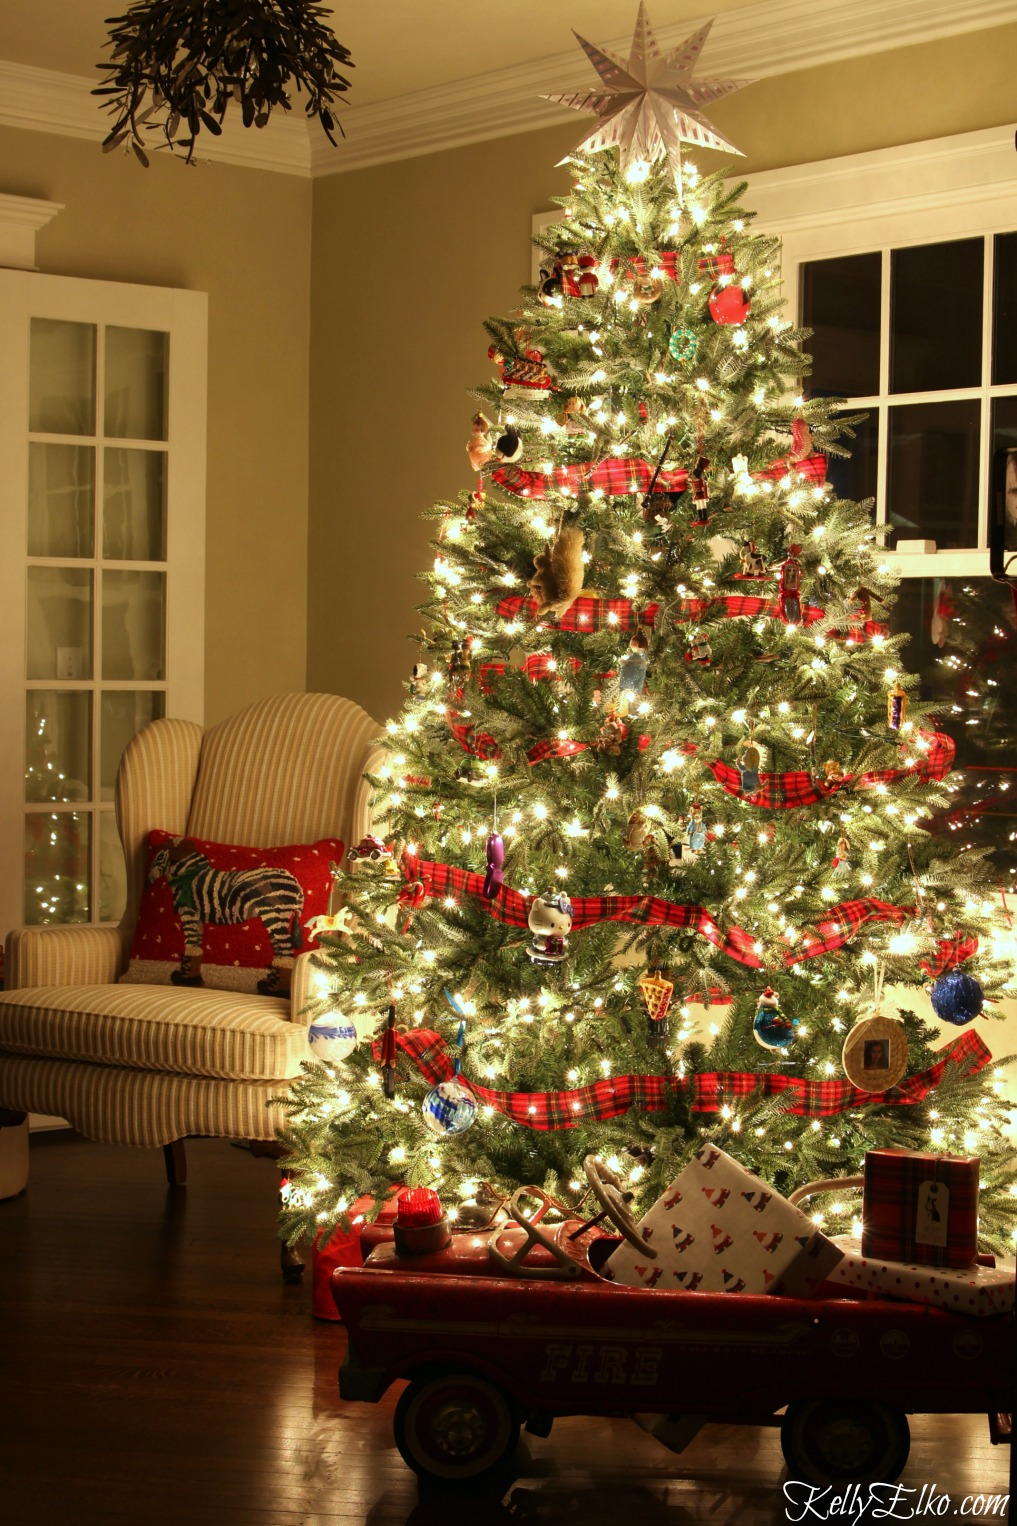 Christmas Lights at Night Home Tours - 35 homes by the glow of light - love this magical tree kellyelko.com